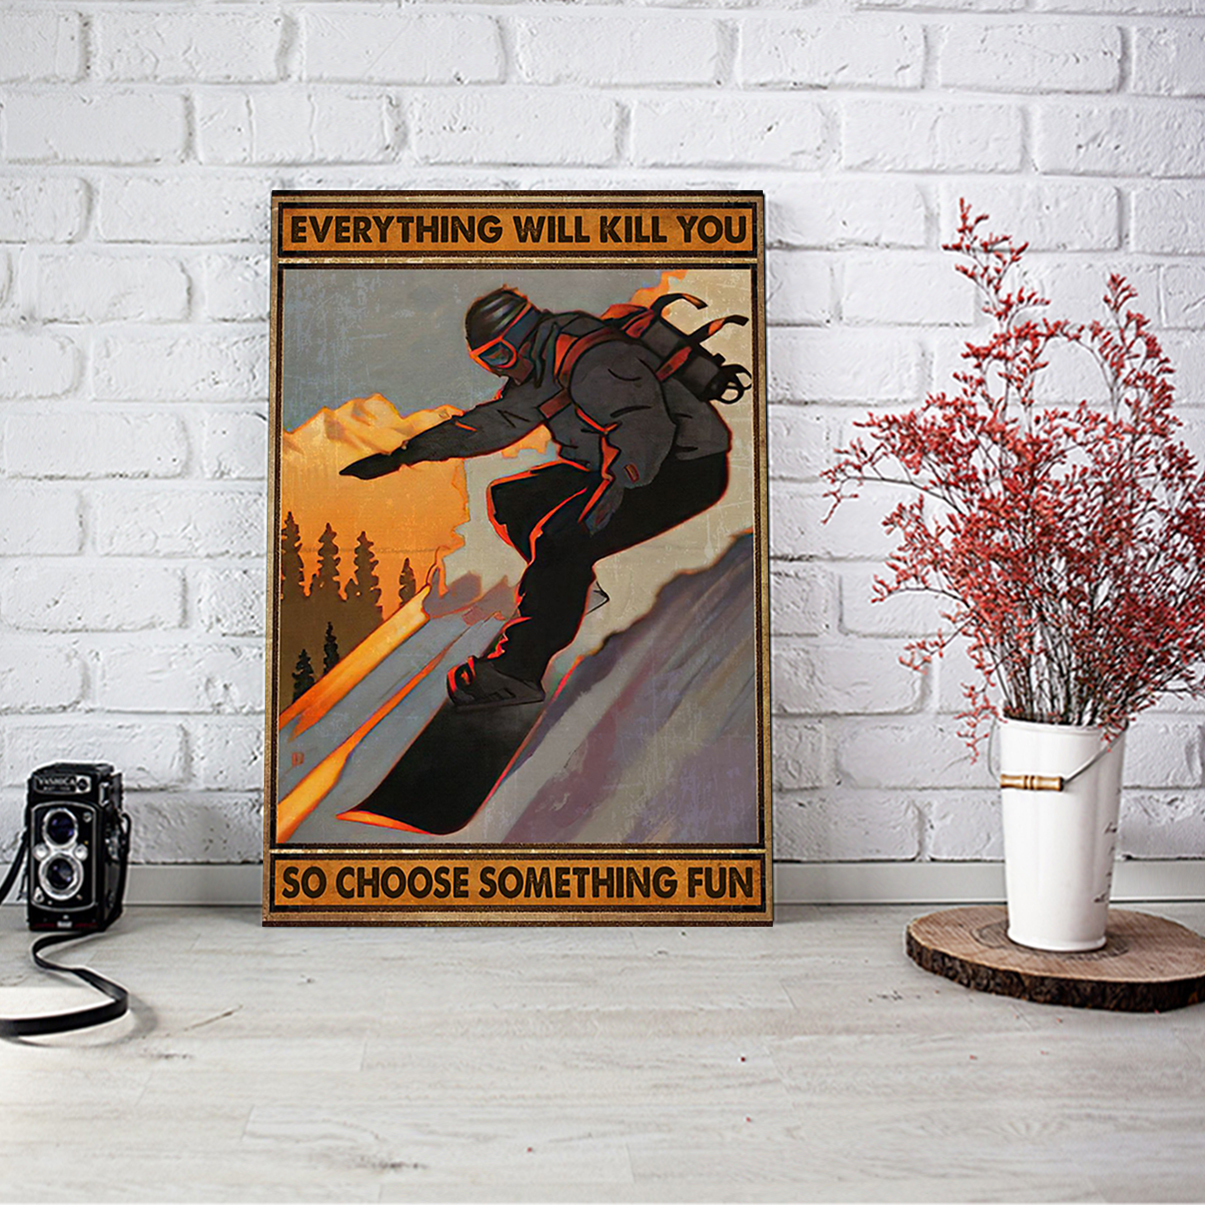 Snowboarding everything will kill you so choose something fun poster A3